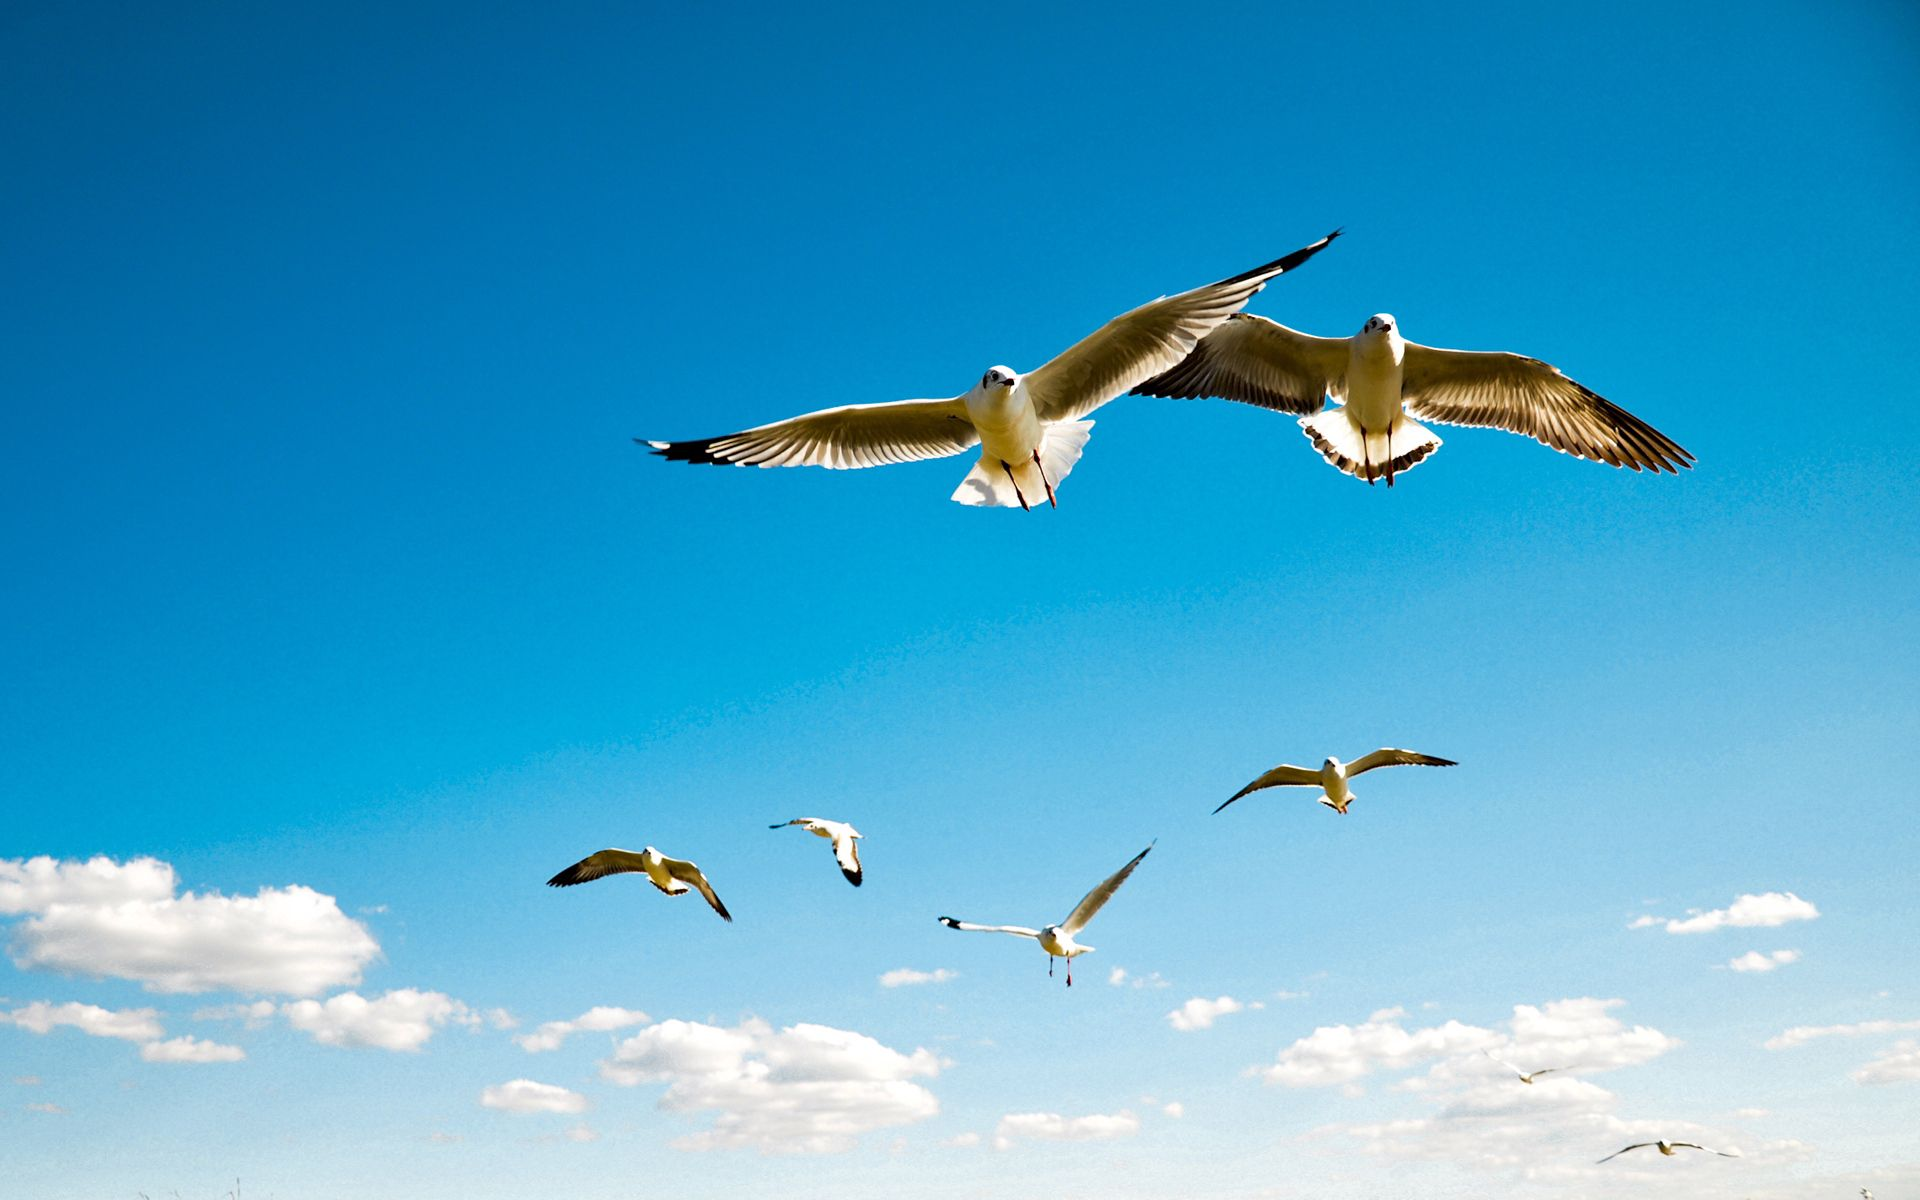 56126 download wallpaper Animals, Birds, Sky, Seagulls, Flight, Wings, Swing, Albatross screensavers and pictures for free